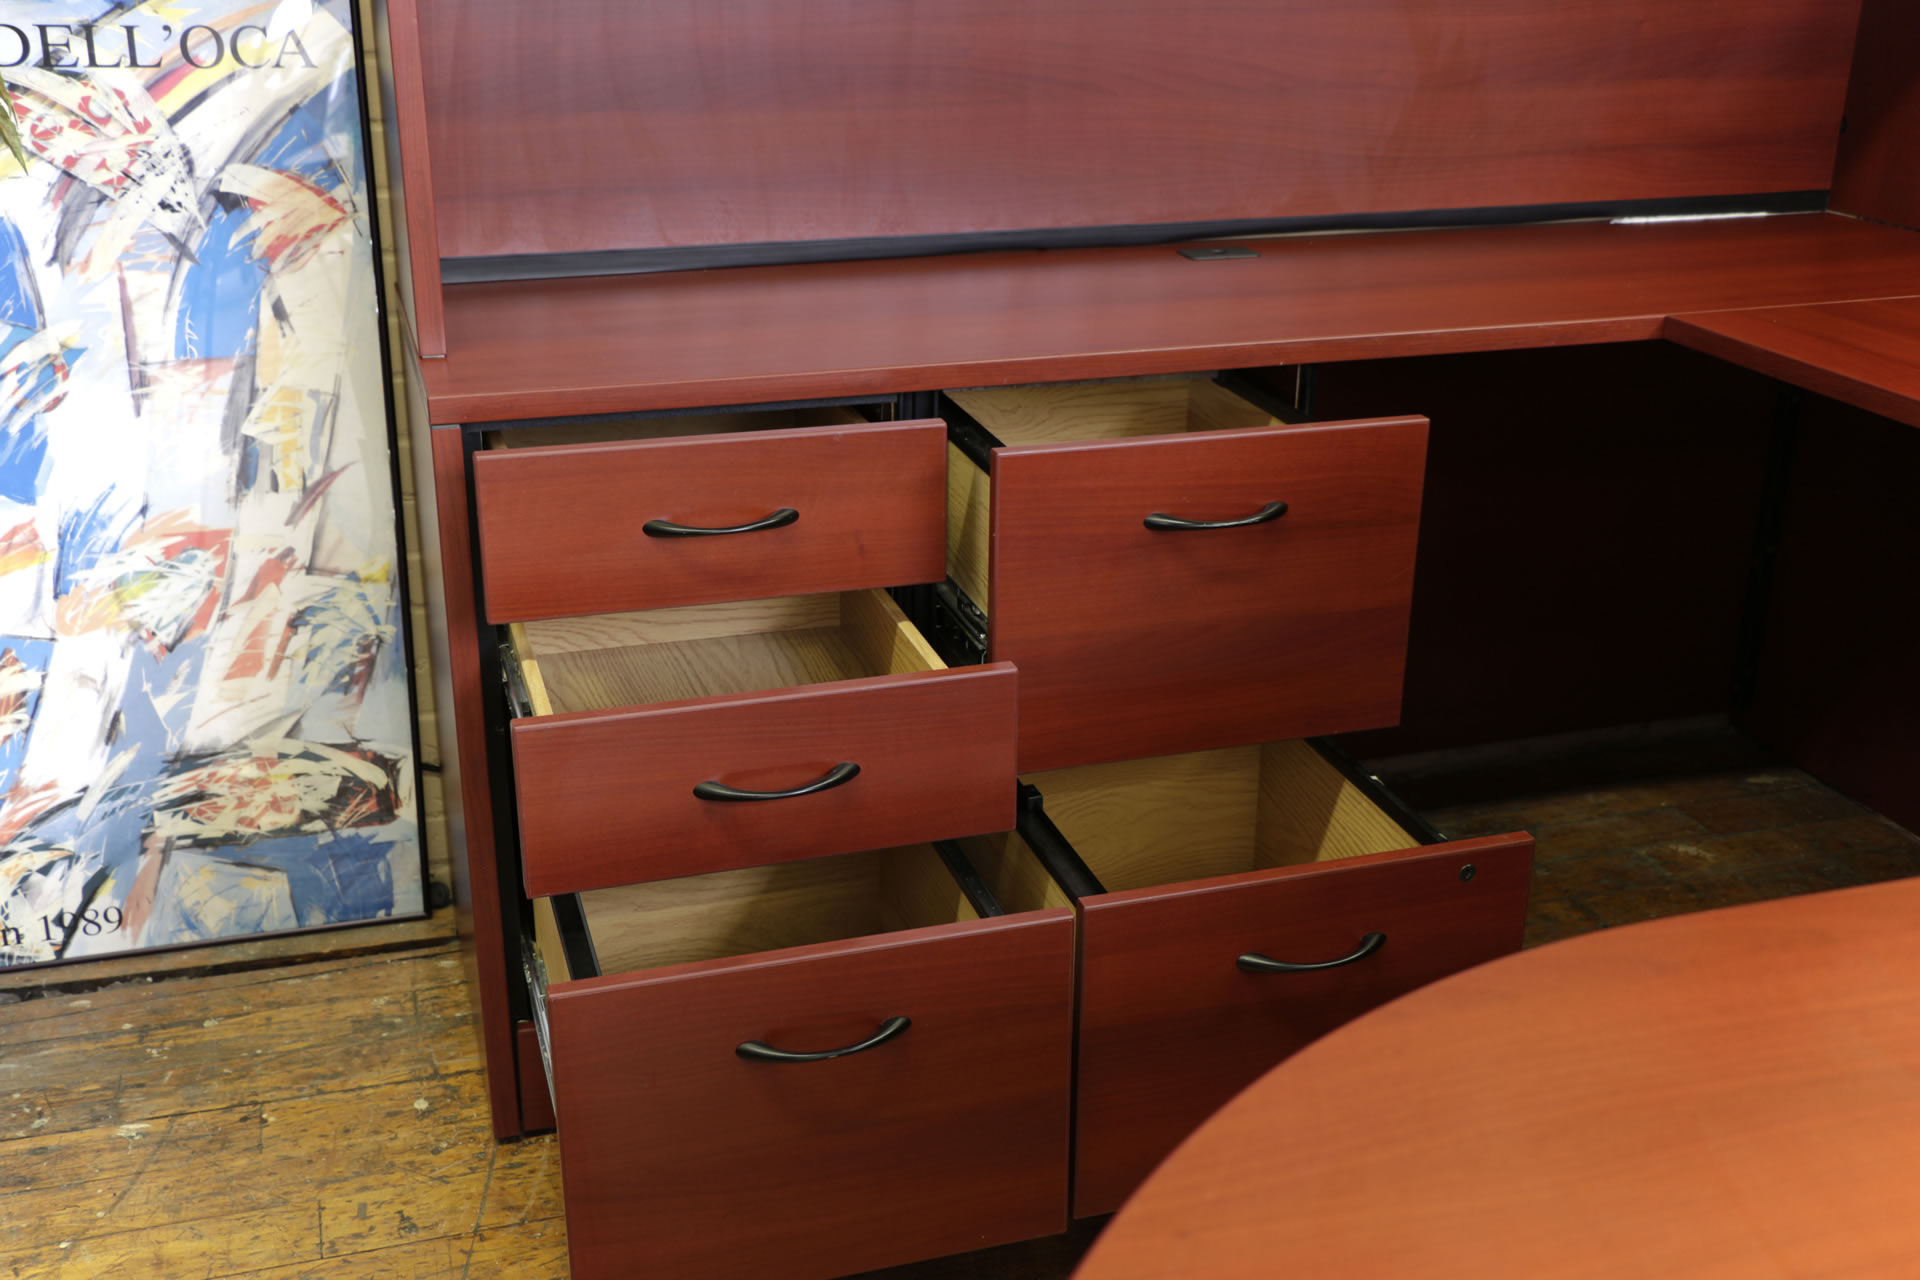 peartreeofficefurniture_peartreeofficefurniture_mg_5306.jpg